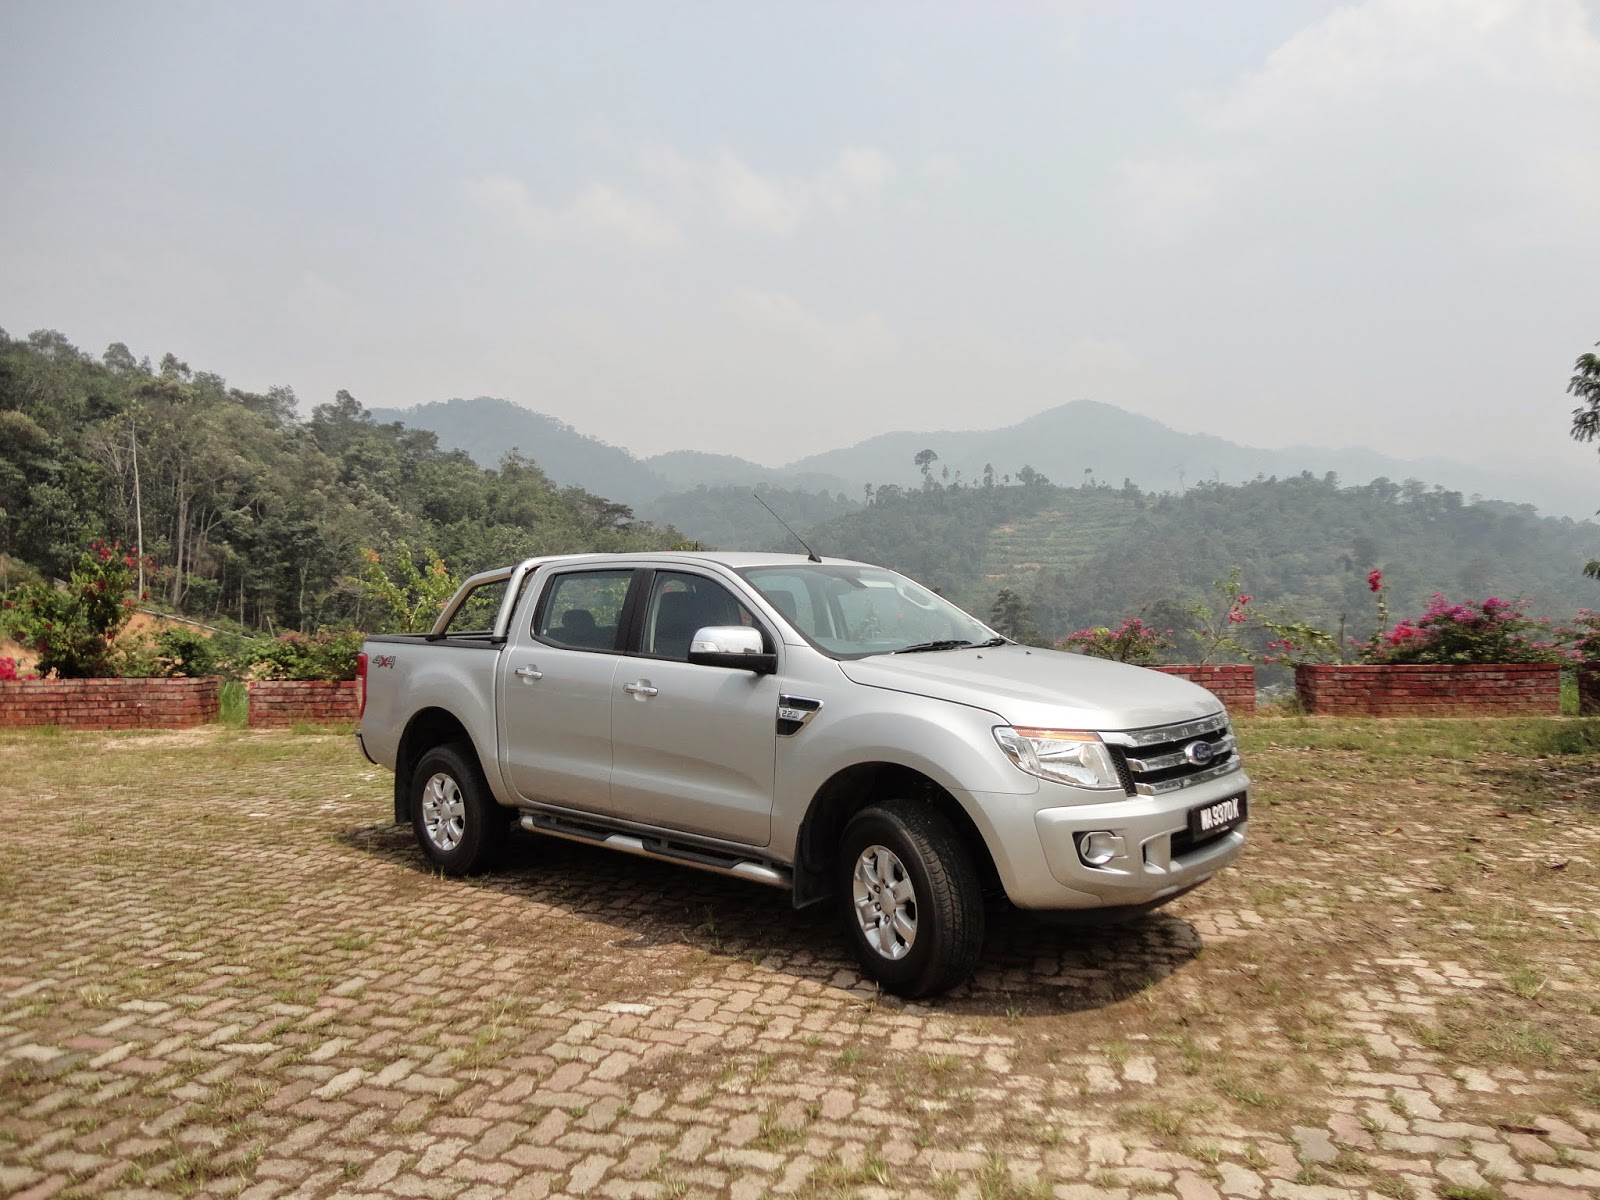 The current ford ranger has been around malaysia since 2012 and is quite a familiar sight first launched in 2011 it has captured a fair number of people